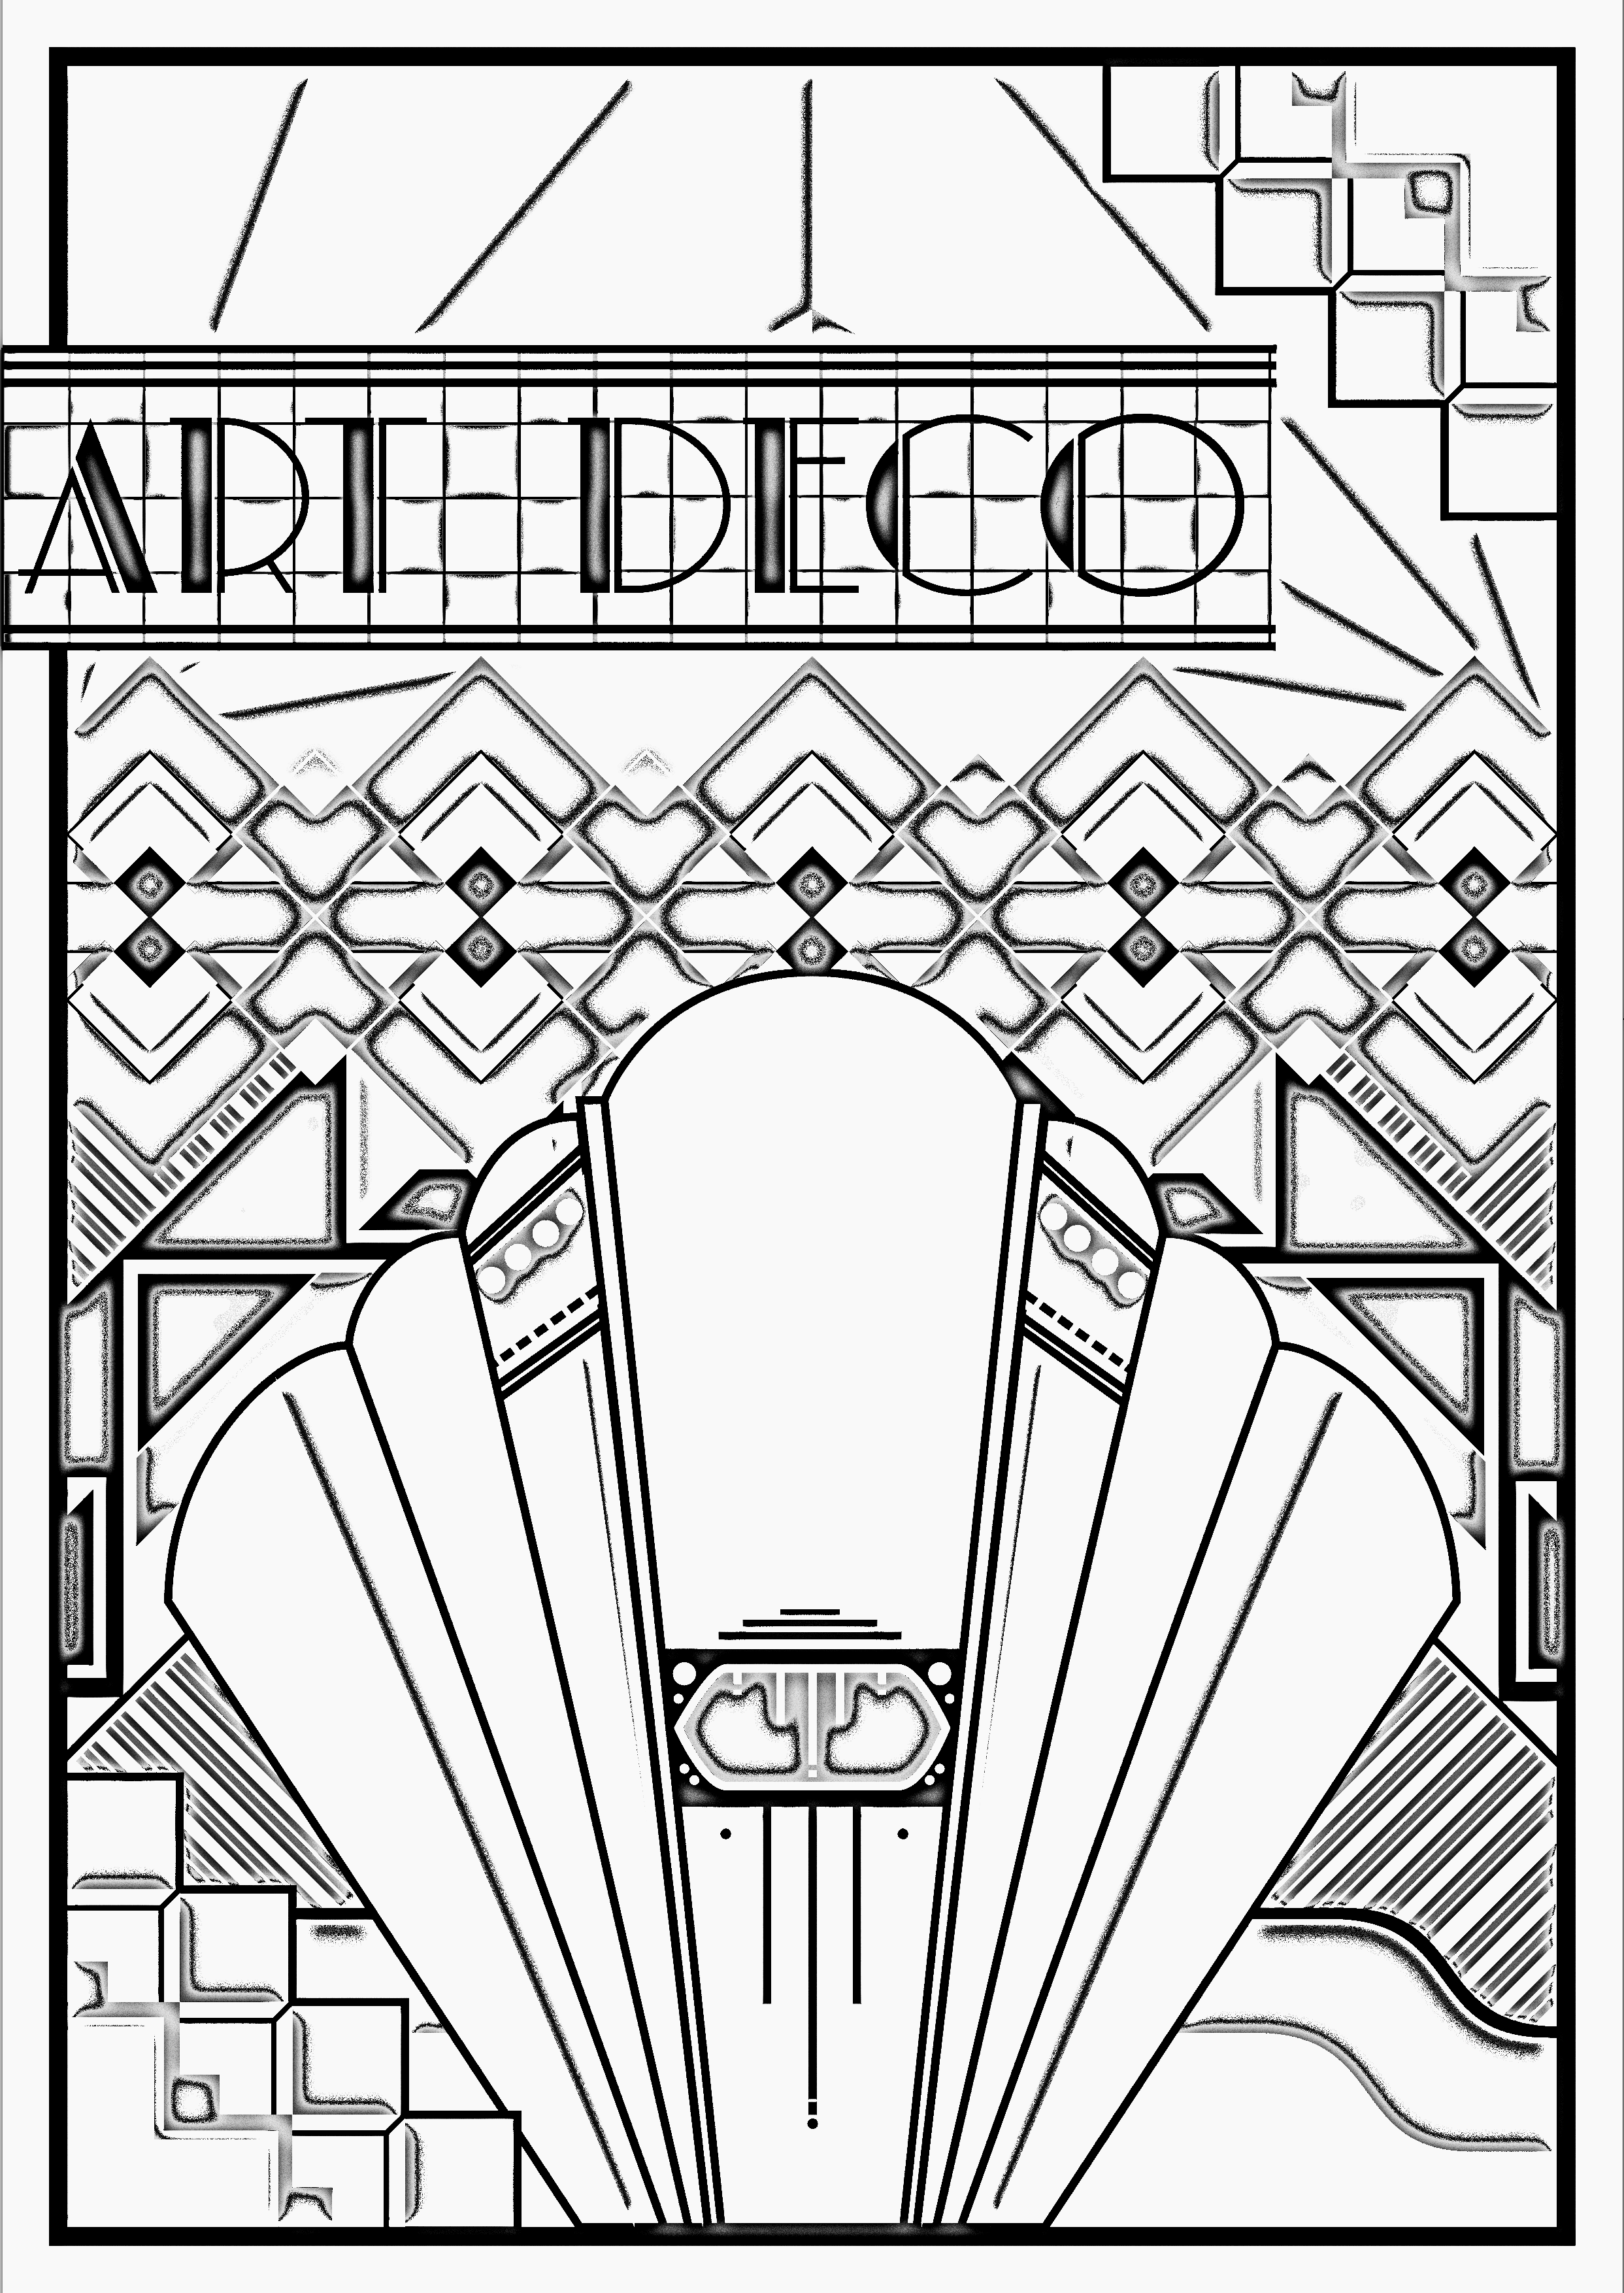 free art deco coloring page exclusive content from www coloring